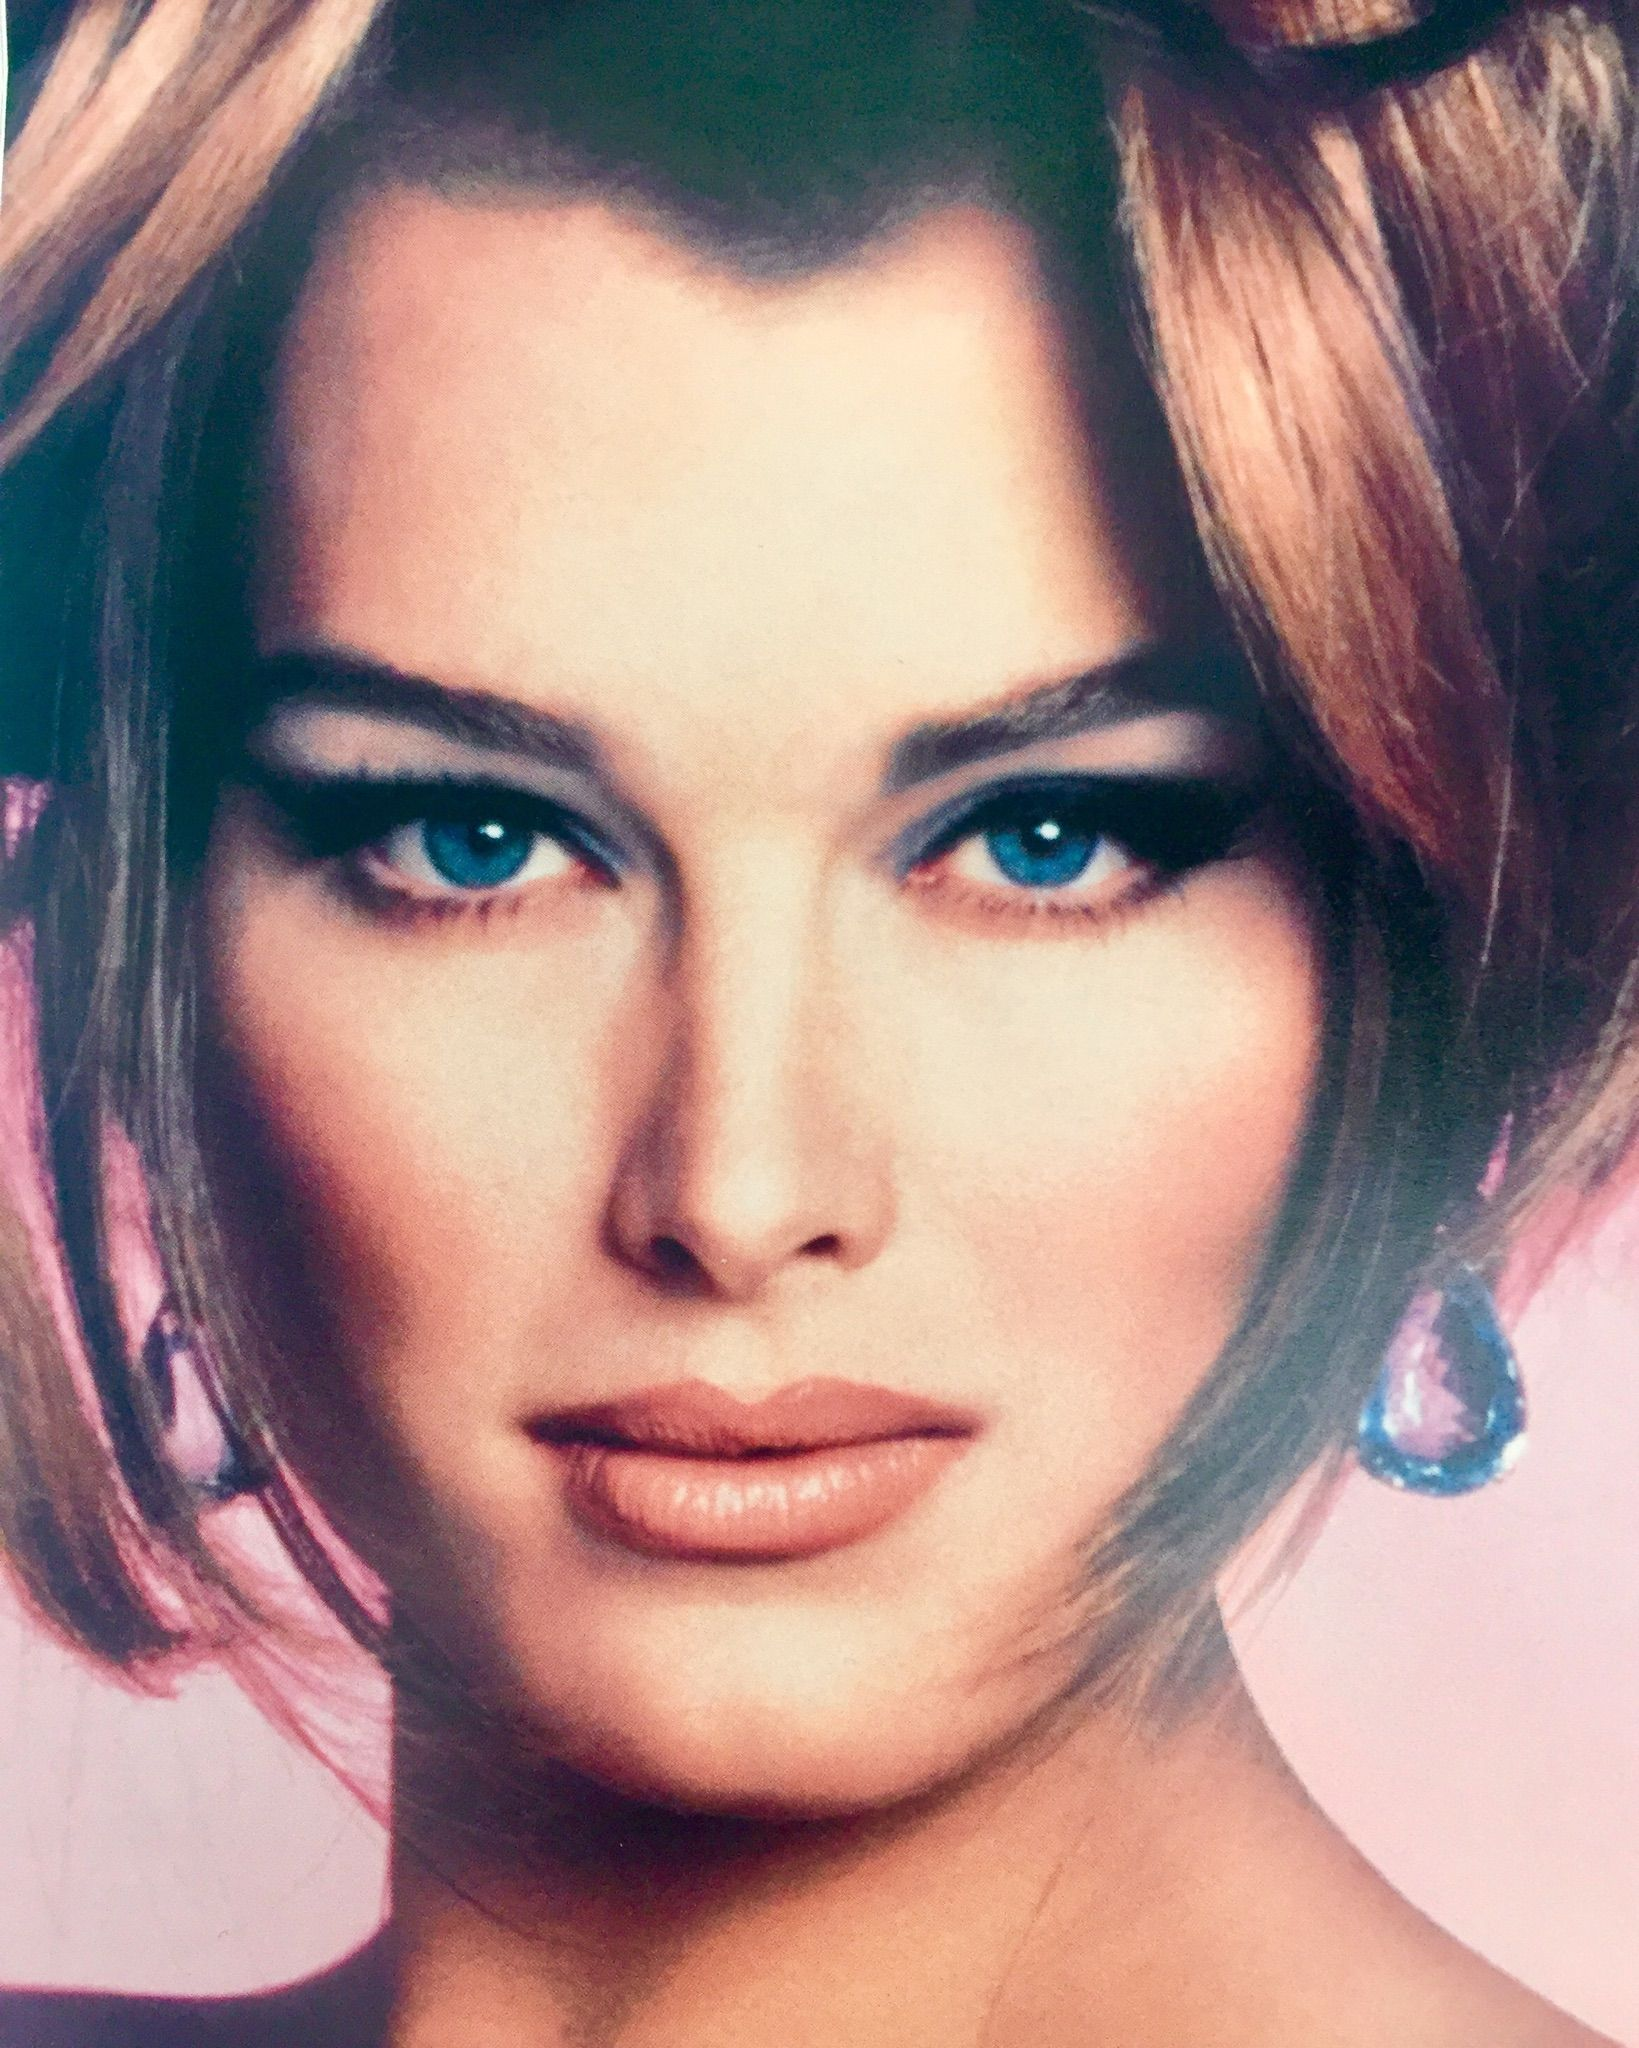 Brooke Shields Makeup By Kevyn Aucoin 90s Hairstyles 90s Fashion Grunge 90s Fashion